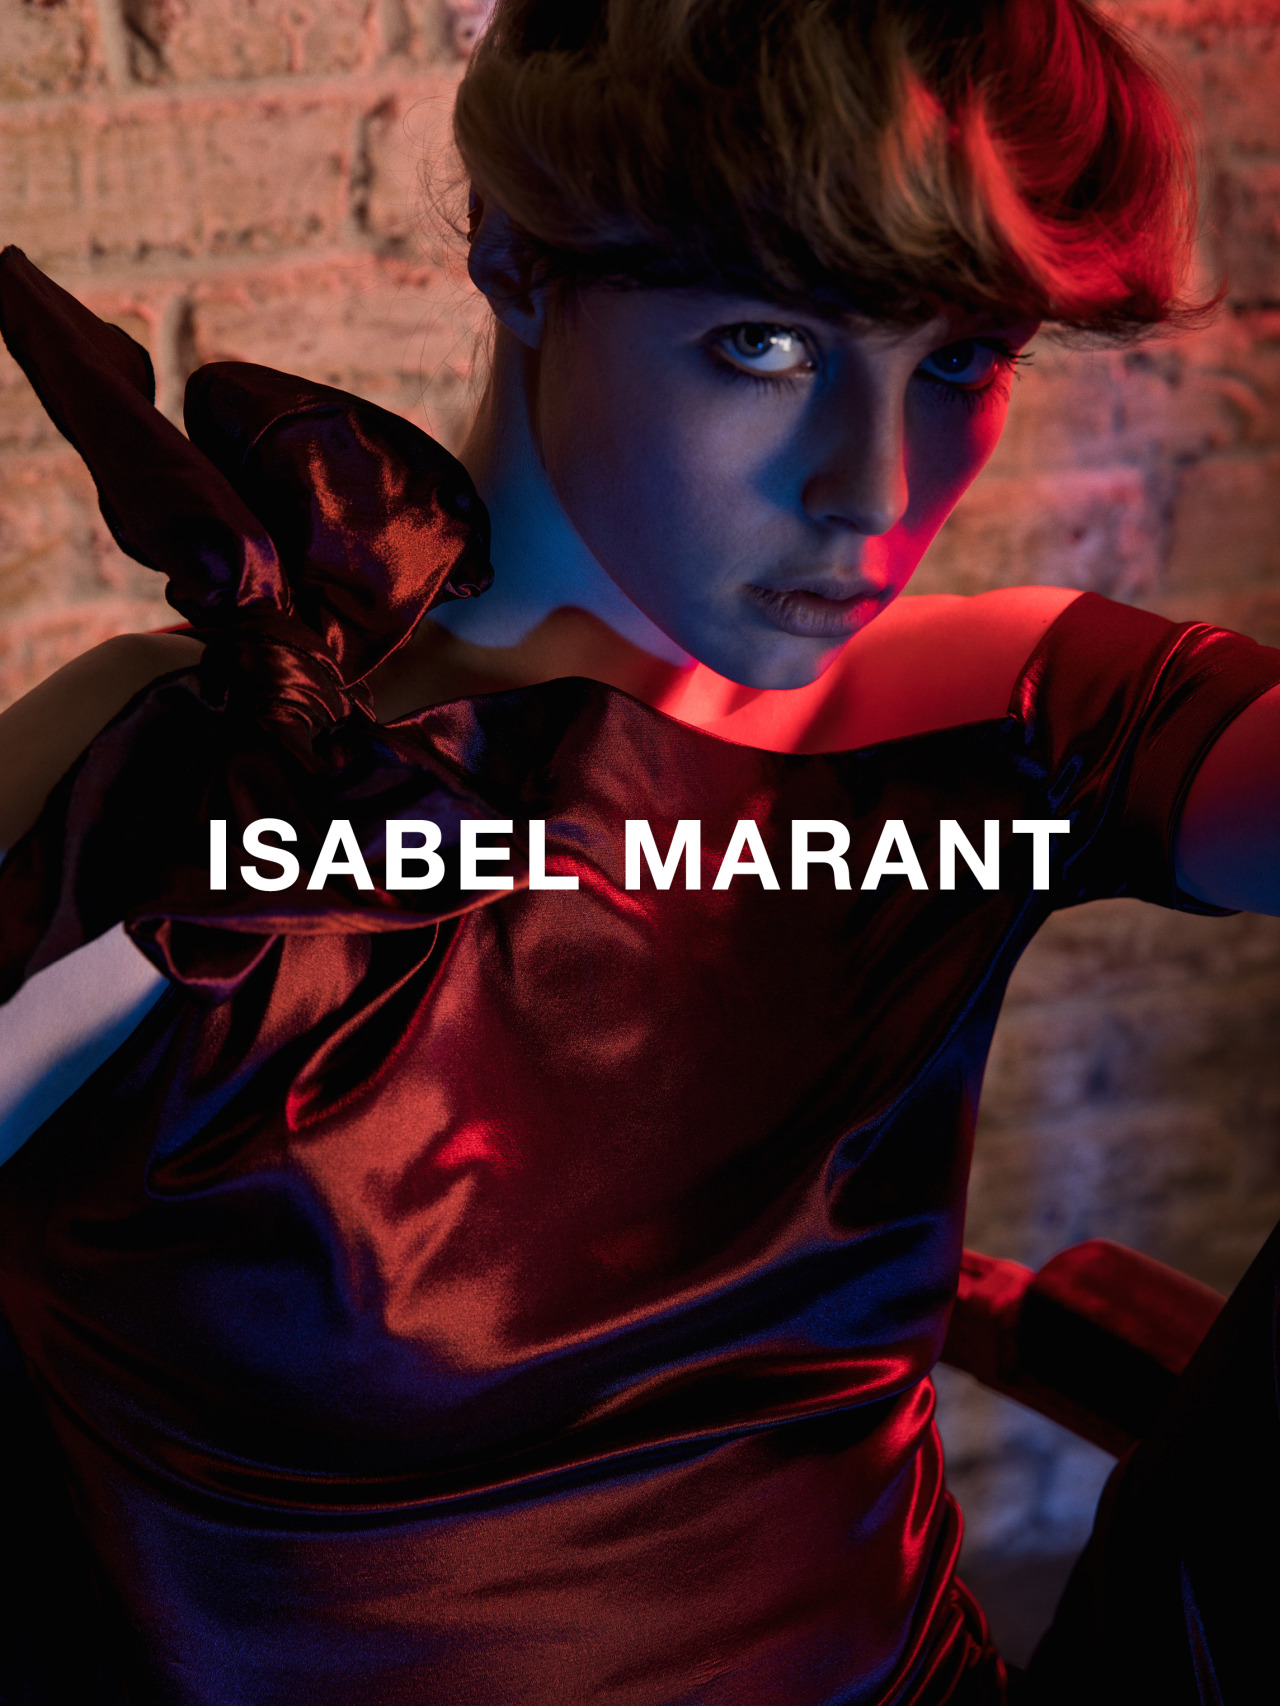 A visual from the Isabel Marant Fall 2016 ad campaign, featuring Edie Campbell.